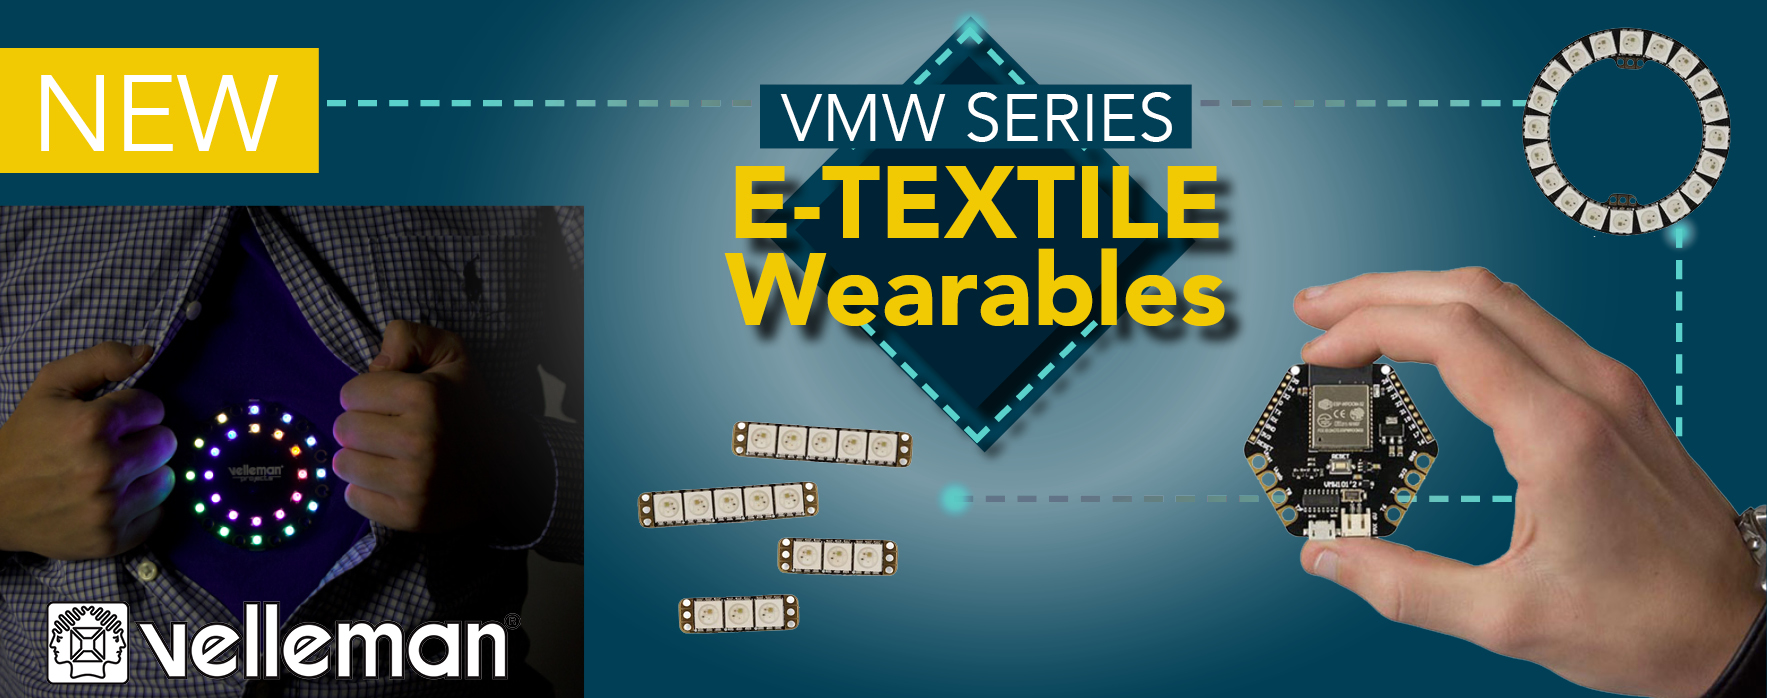 vmw series weareables